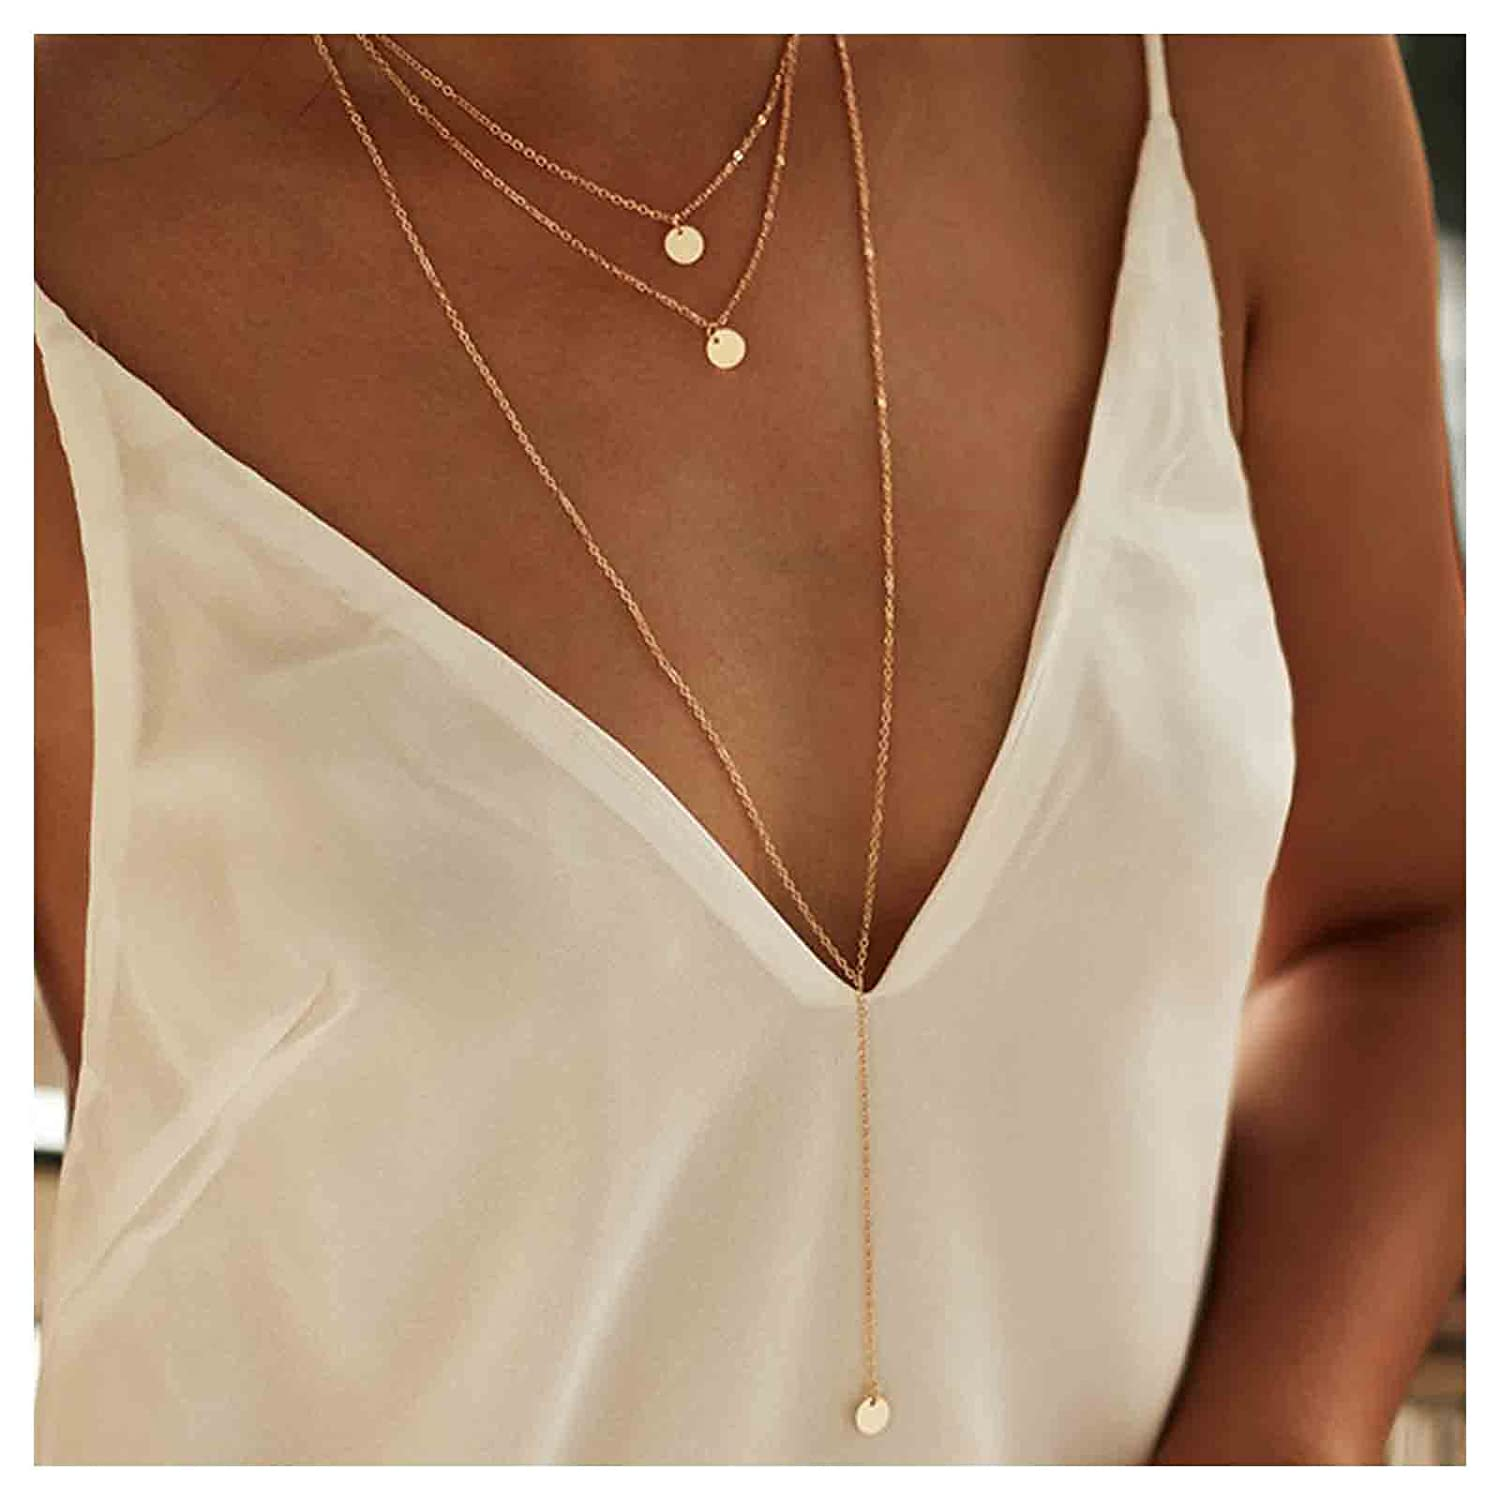 Yheakne Boho Layered Coin Necklace Gold Disc Coin Pendant Necklace Long Necklaces for Women Girls Y Lariat Necklace Jewelry